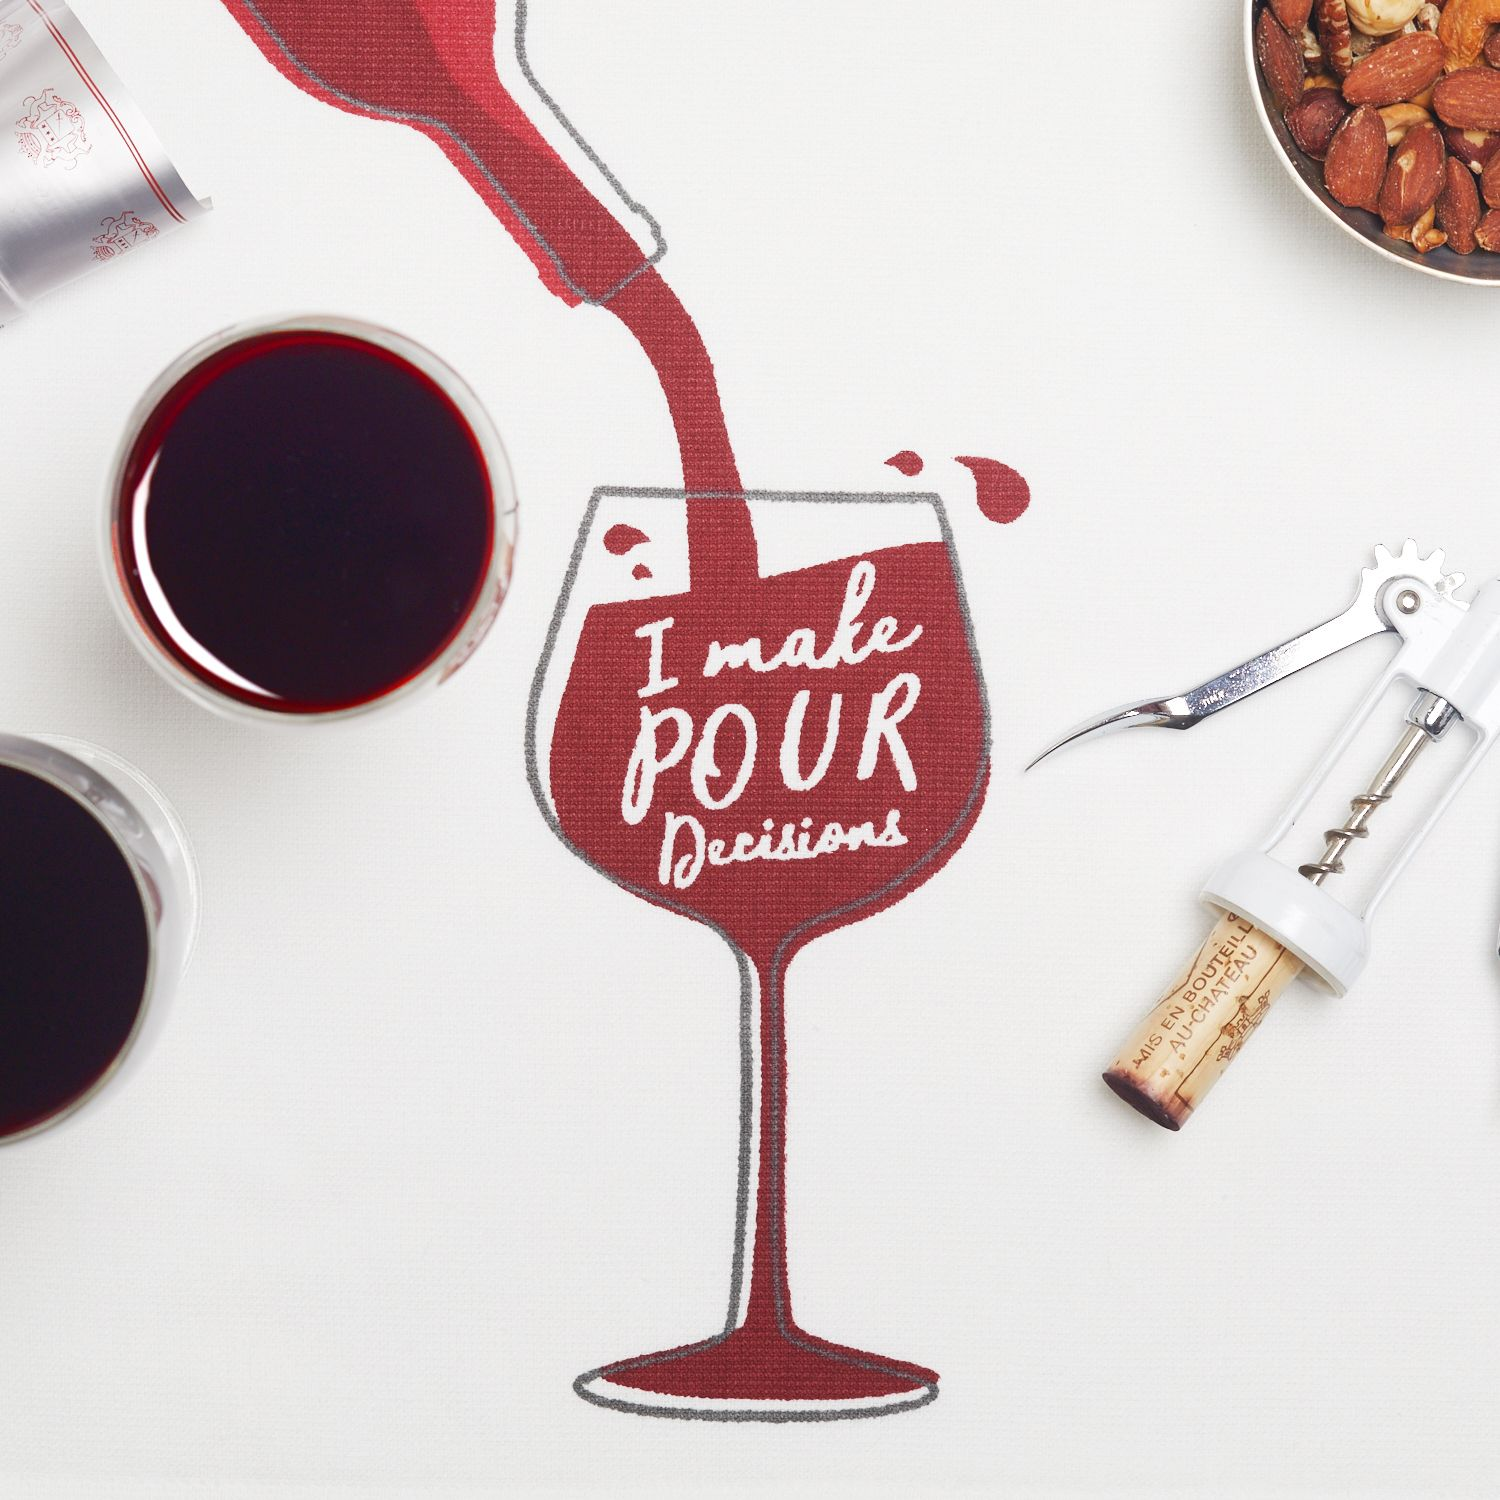 I Make Pour Decisions Casaba Label Kitchen Towel At Dcd We Love A Good Pun And A Glass Of Red Wine Or Two Wine And Dine How To Make Best Puns